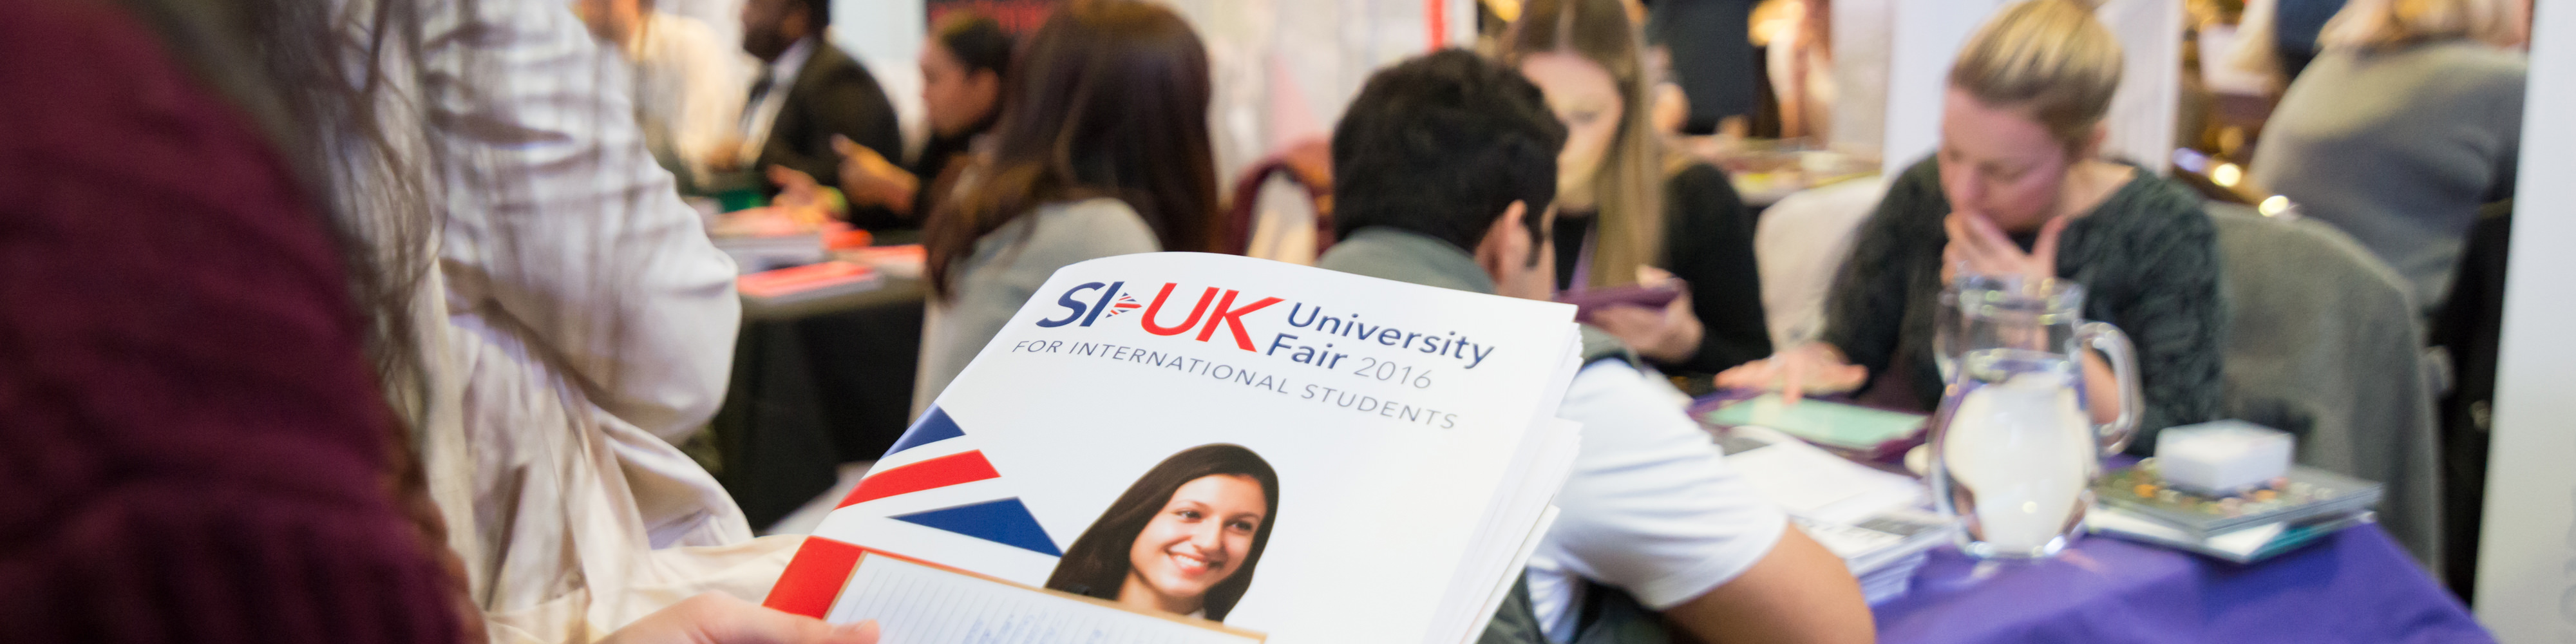 UK University Fair London Registration | UK University Fair, November 2017